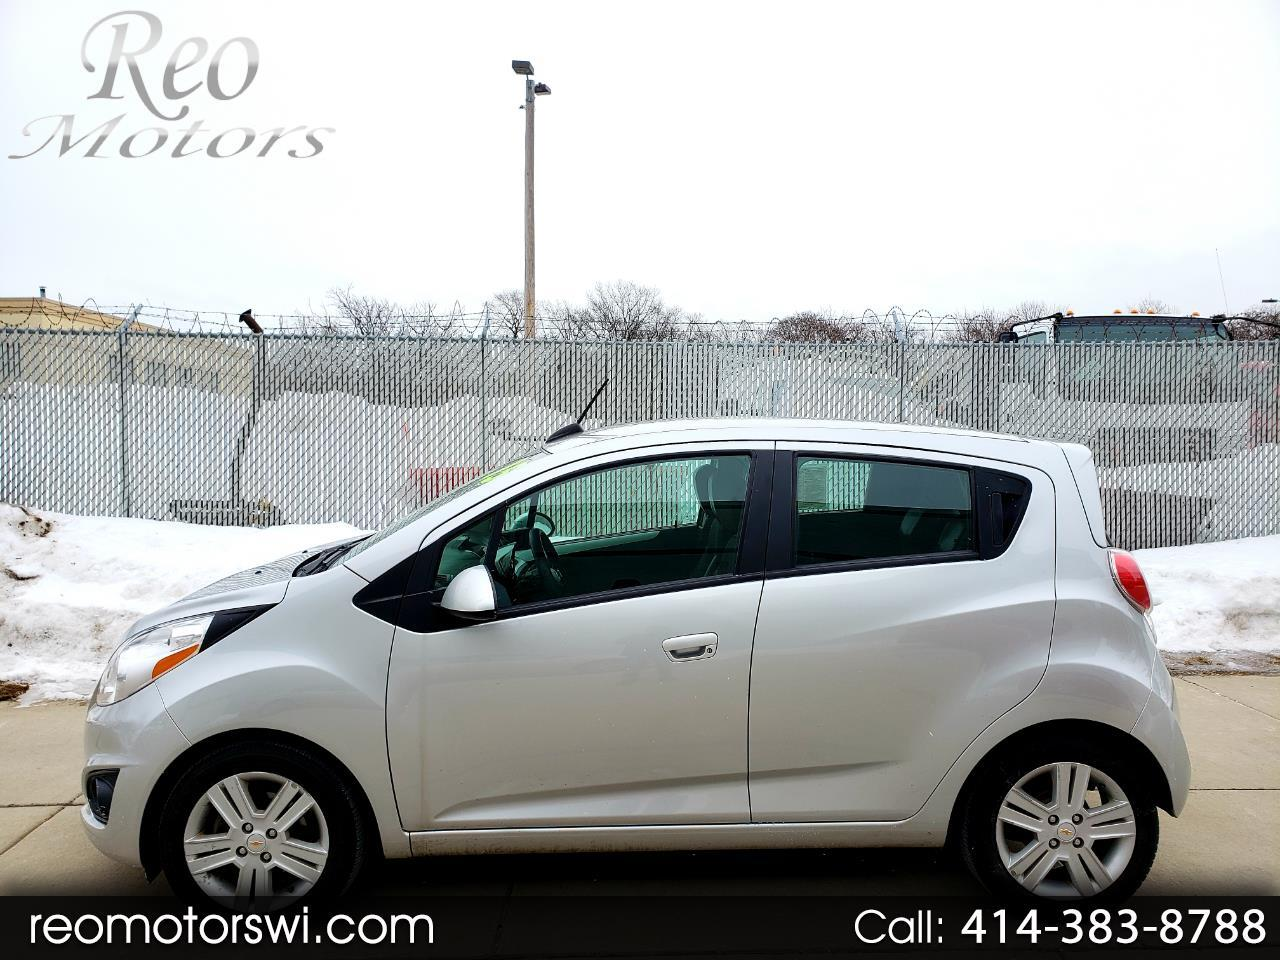 2015 Chevrolet Spark A/T